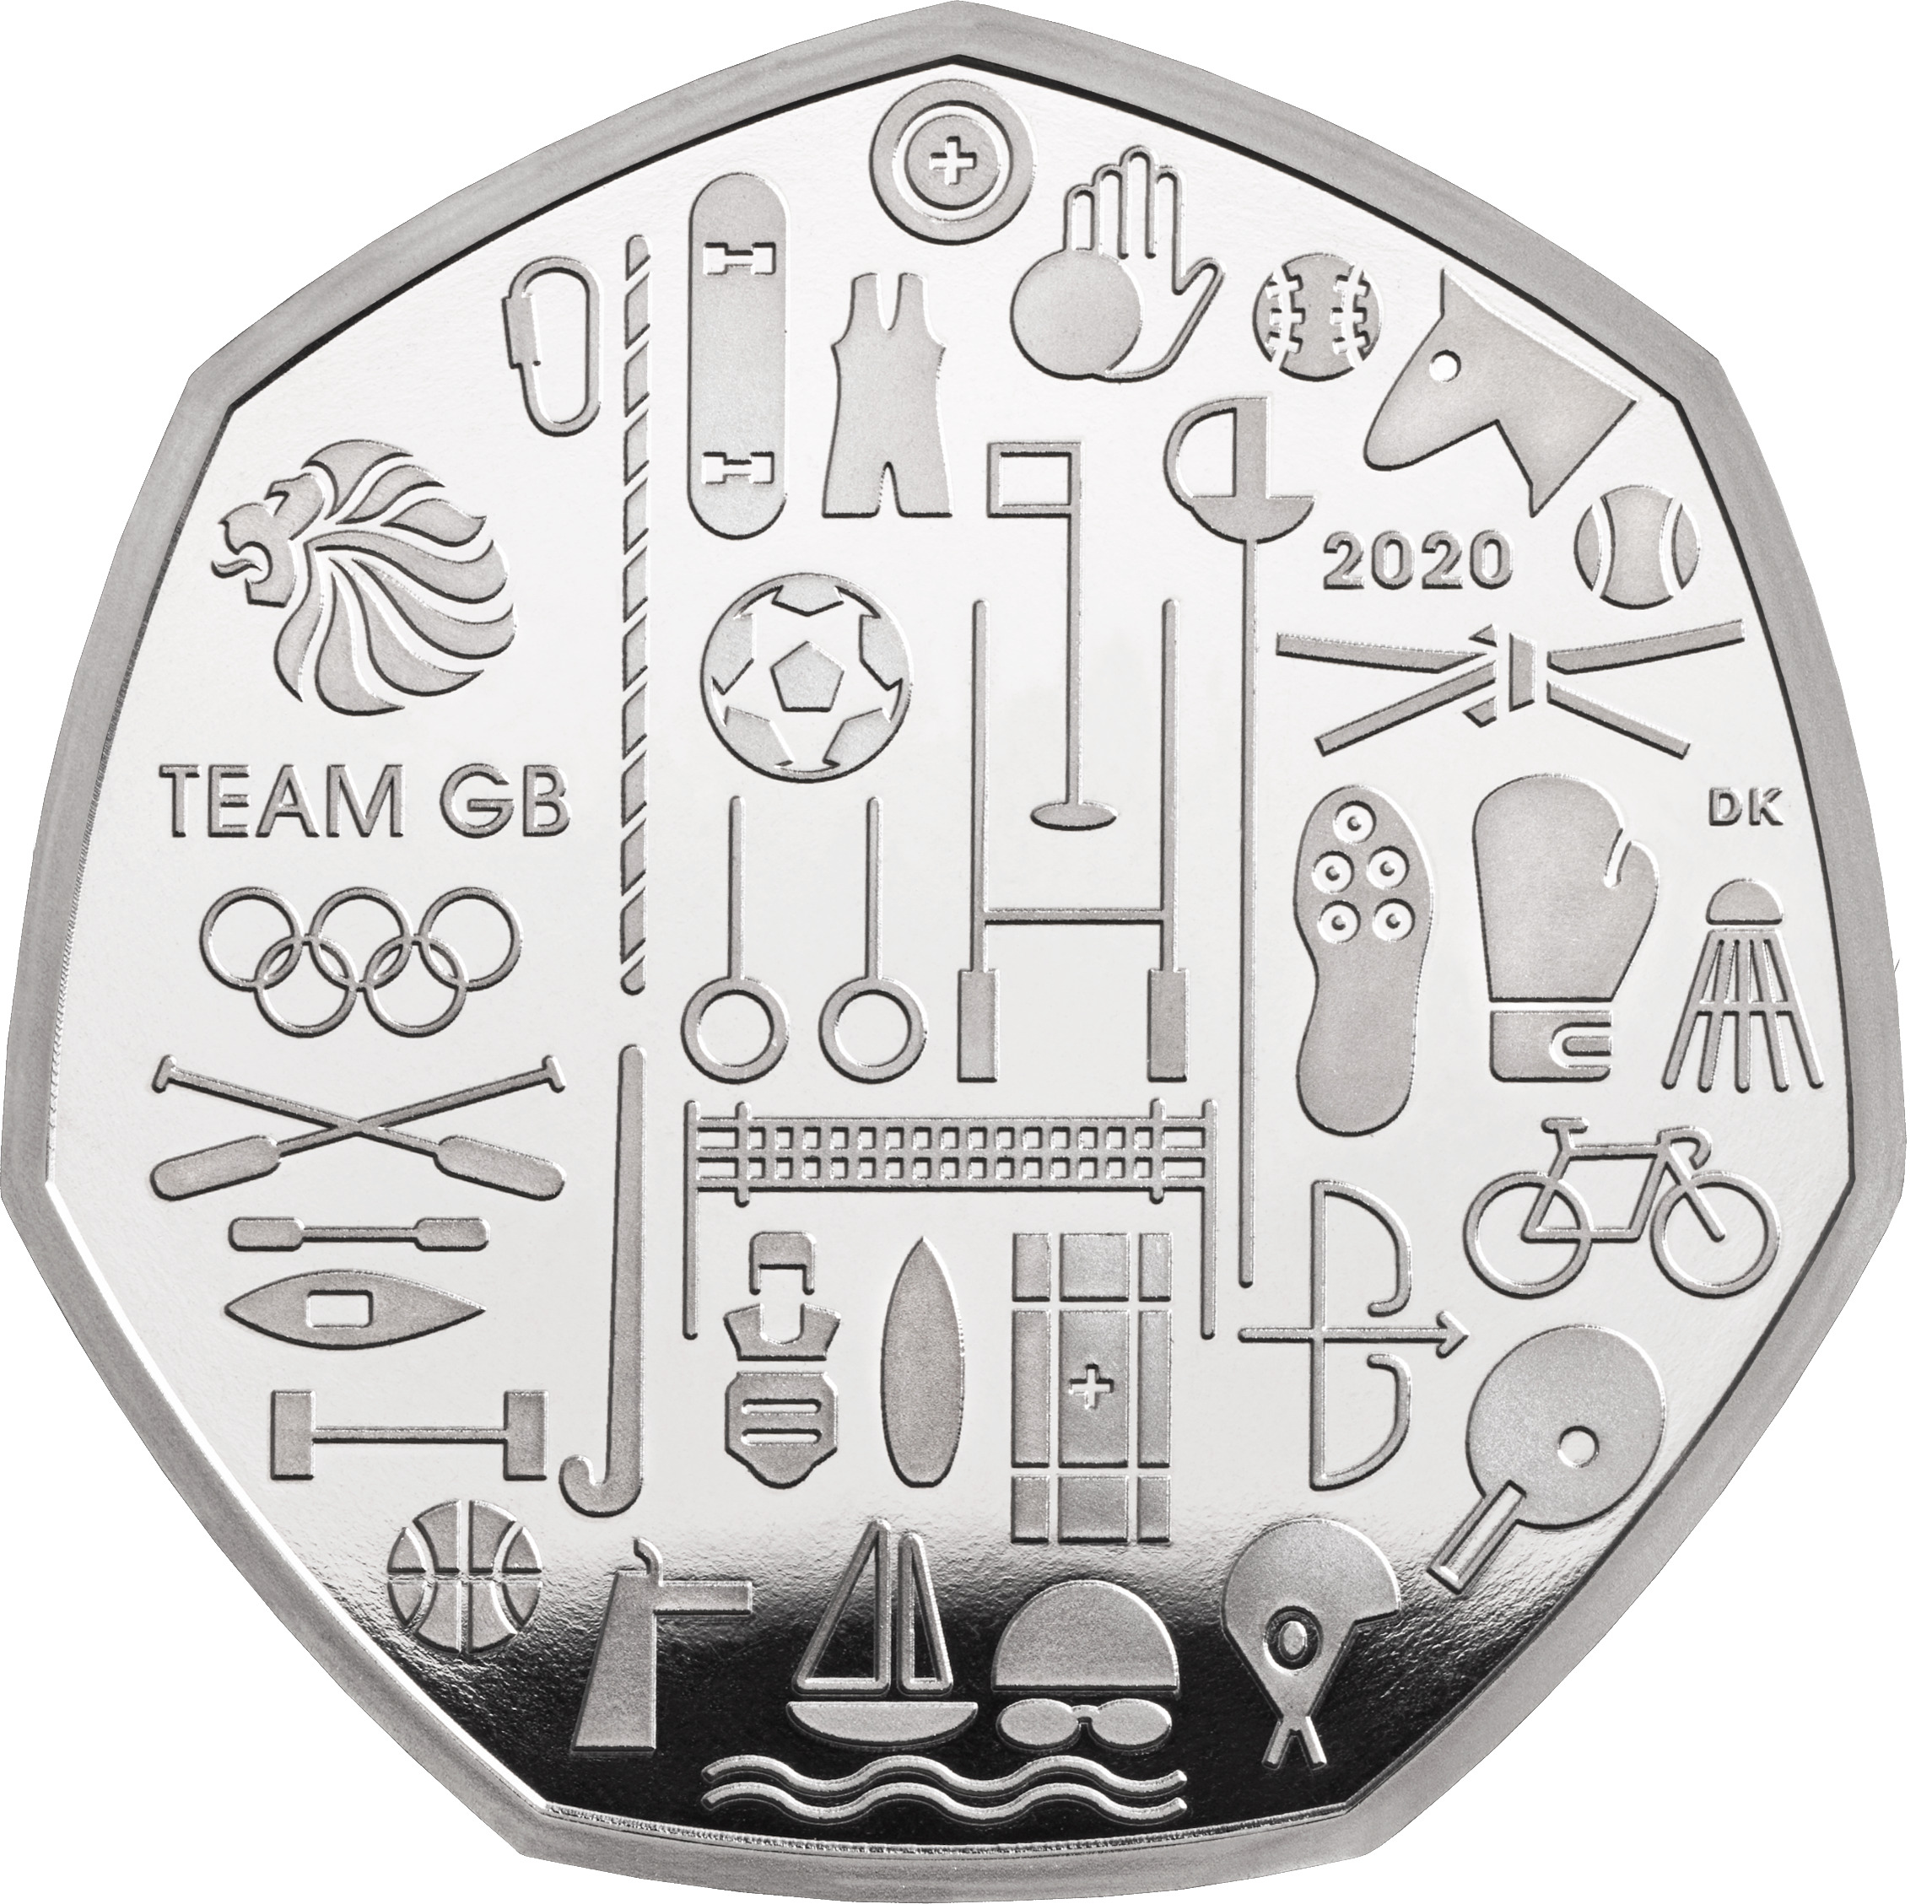 The 50p coin for Team GB (The Royal Mint/PA Wire)